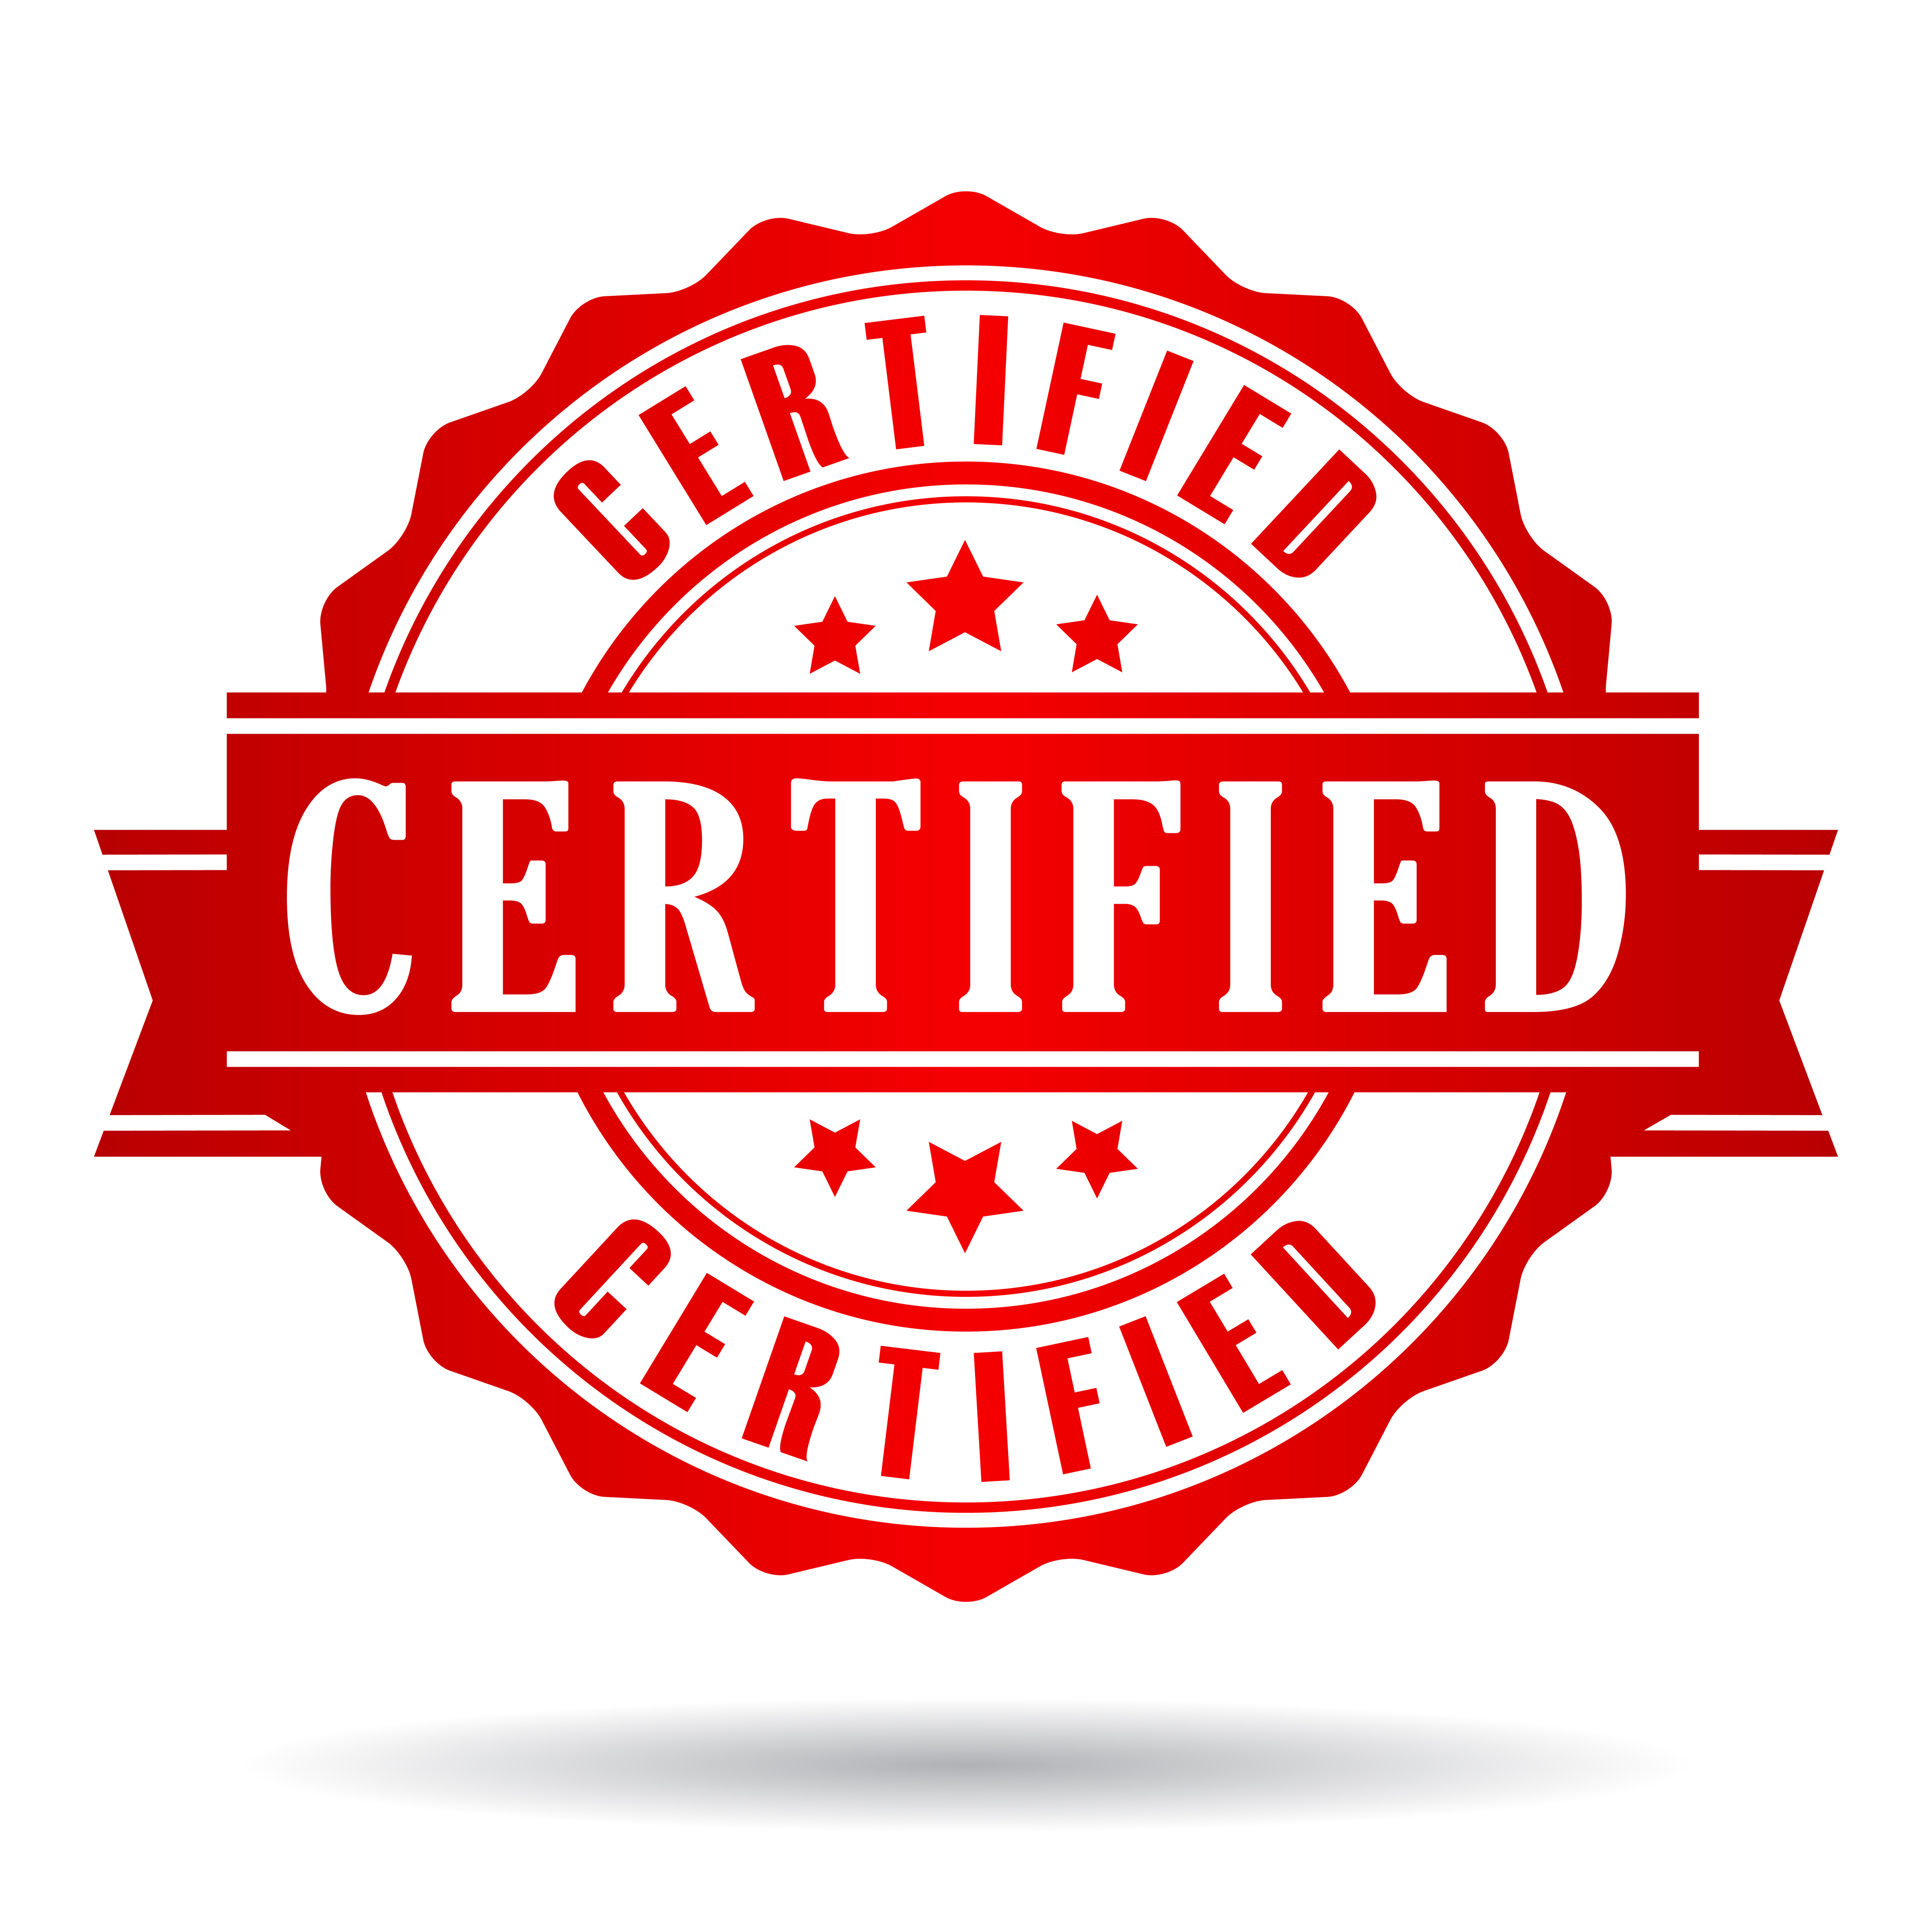 Mbe dbe certifications bernardjohnsongroup a minority business is a socially and economically disadvantaged small business concern organized for profit as defined under the small business act xflitez Gallery